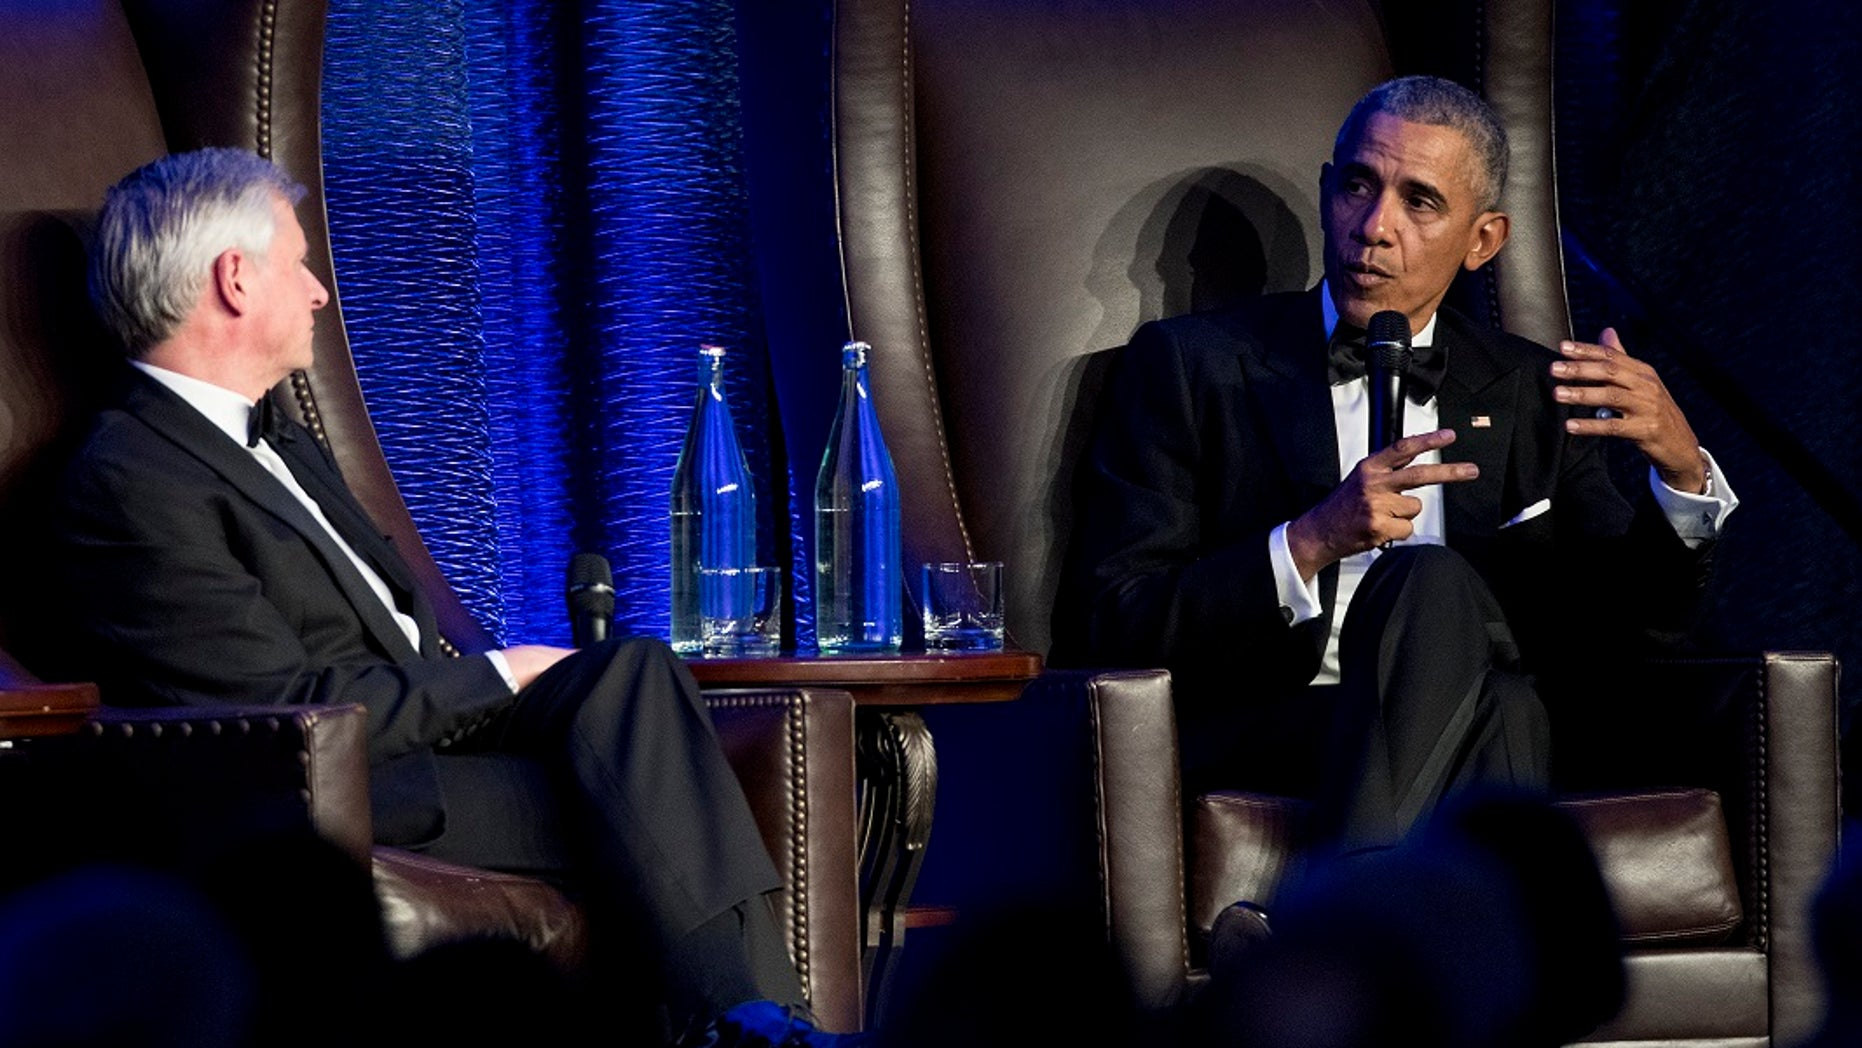 Former President Barack Obama talks with Jon Meacham during the celebration of the 25th Anniversary Gala of the Baker Institute for Public Policy at Rice University.